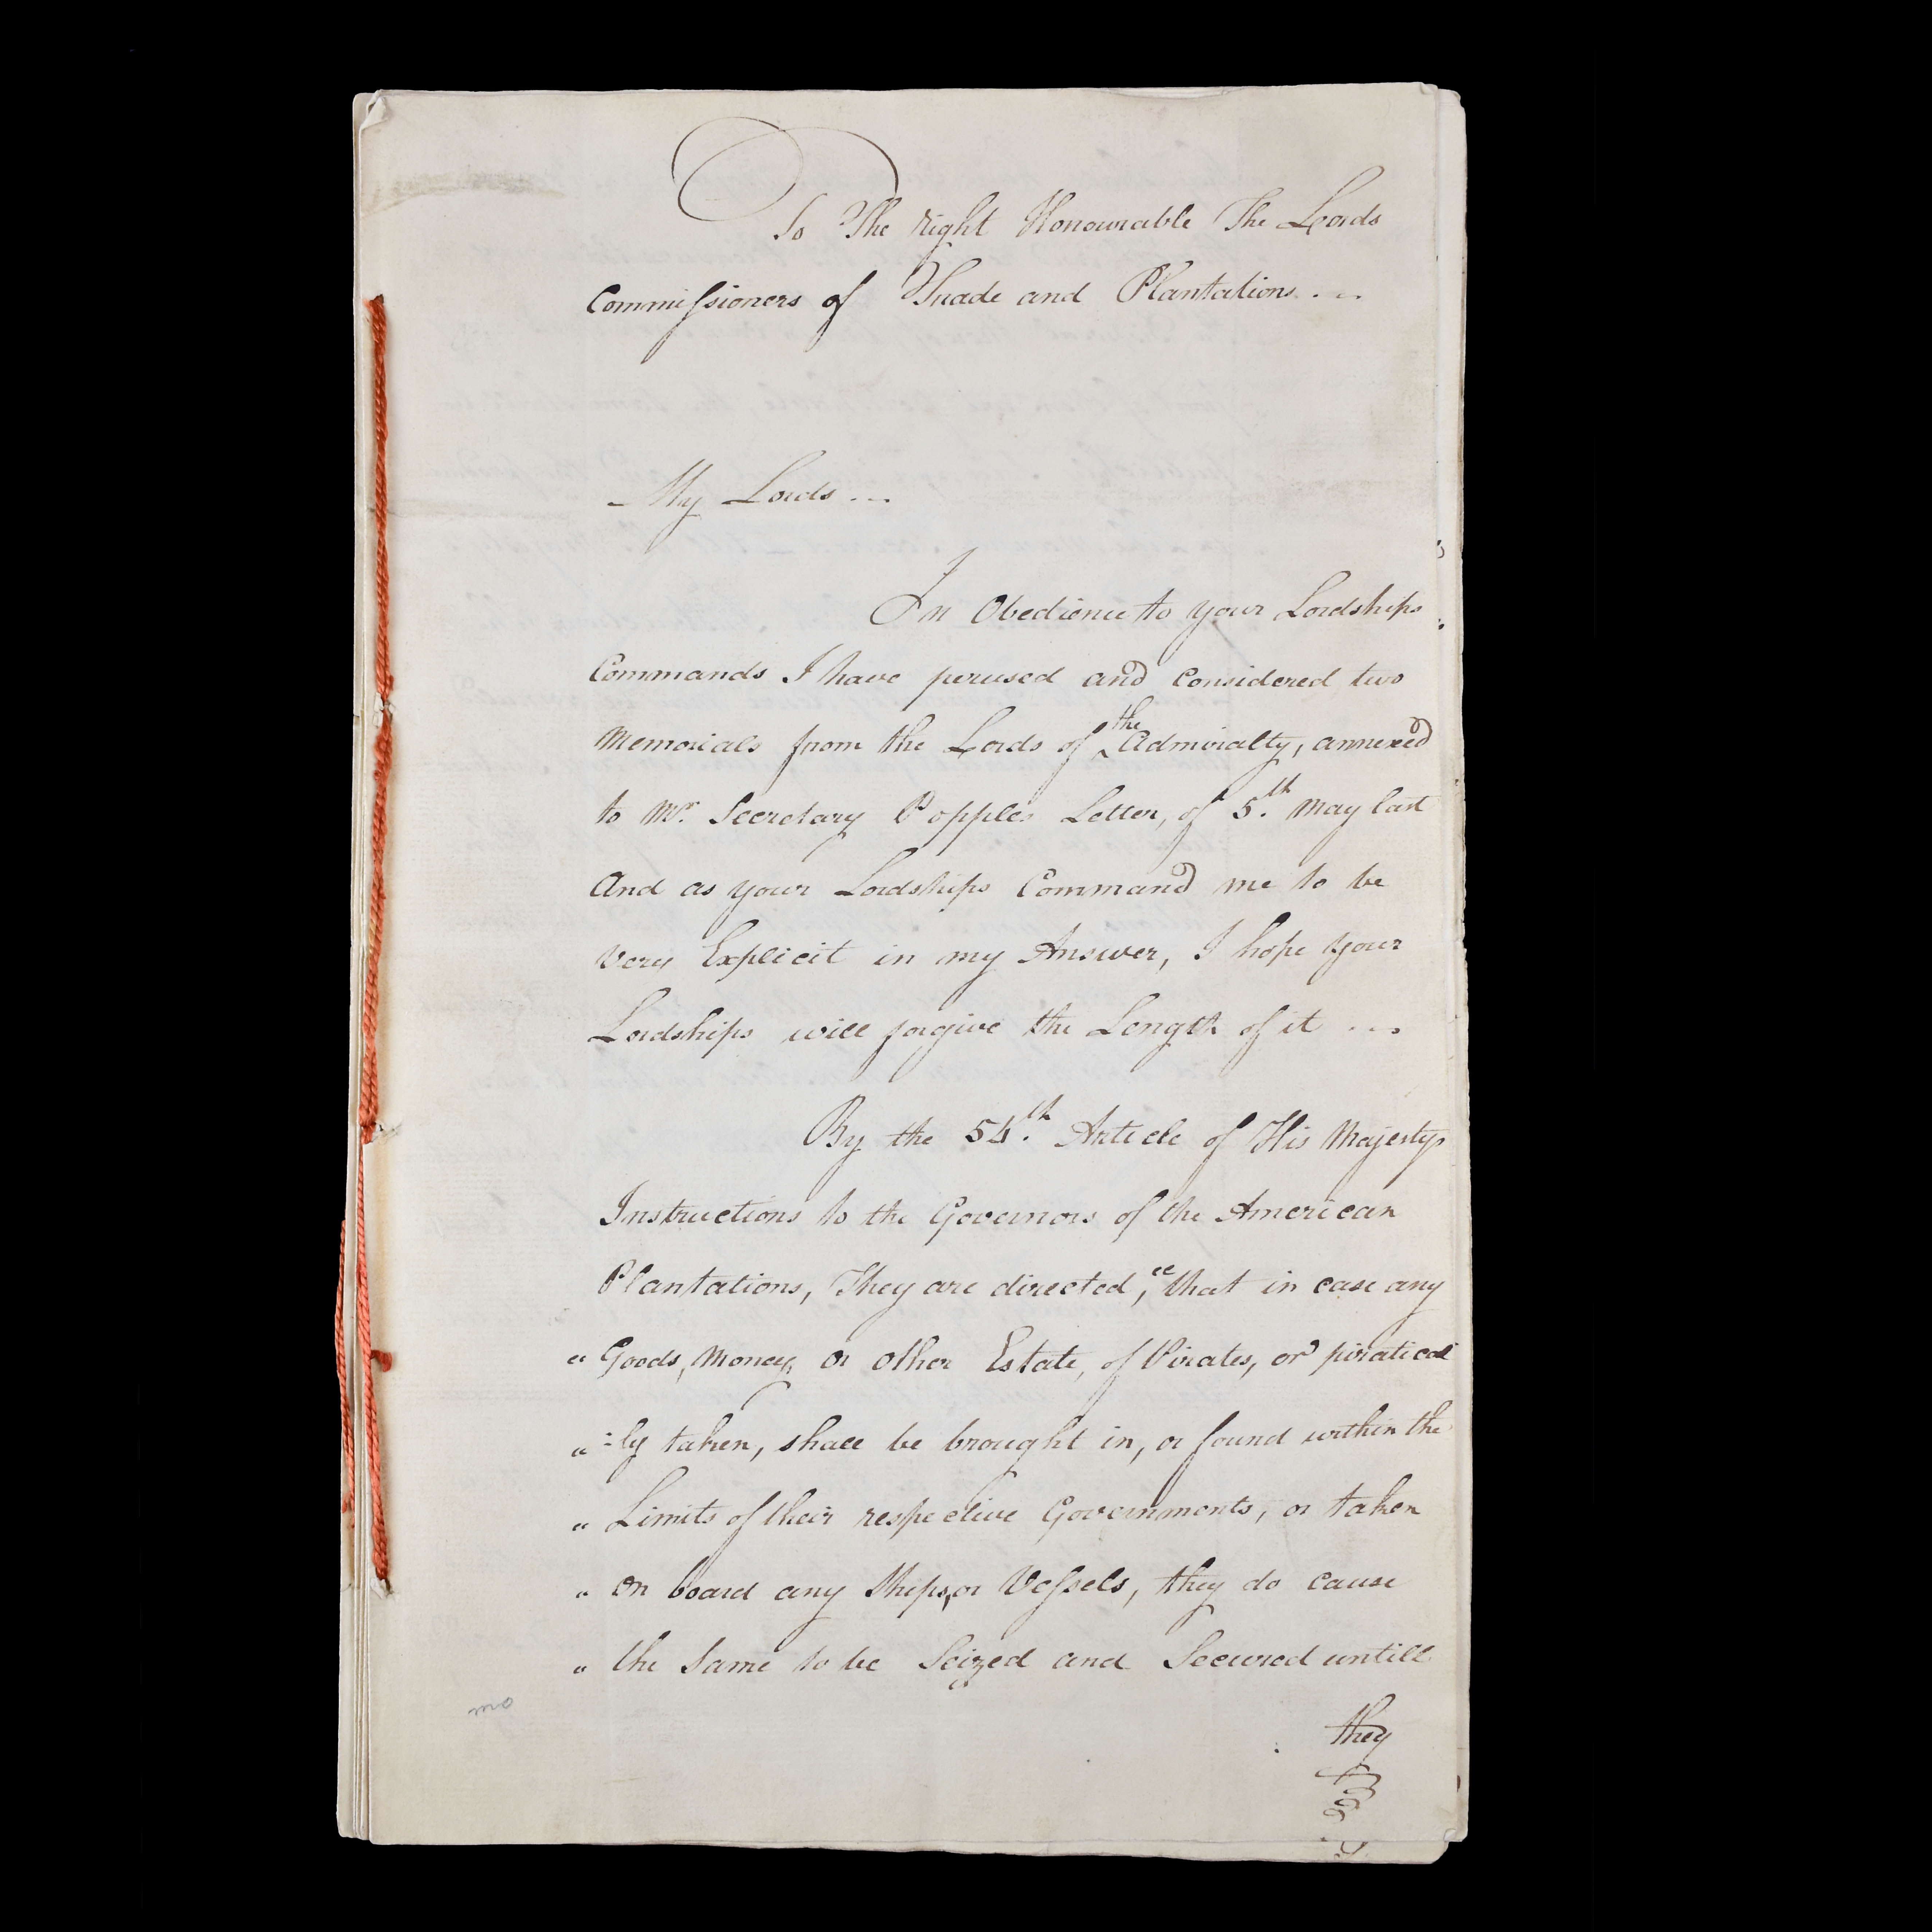 An Important Document Addressed To Lords of the Admiralty and Governors of the American Plantations  Concerning The Confiscation of Pirate Goods and Establishing an Act that will allow Pirates to be Tried and Punished by Courts in the Colonies and Provinces. (photo 3)